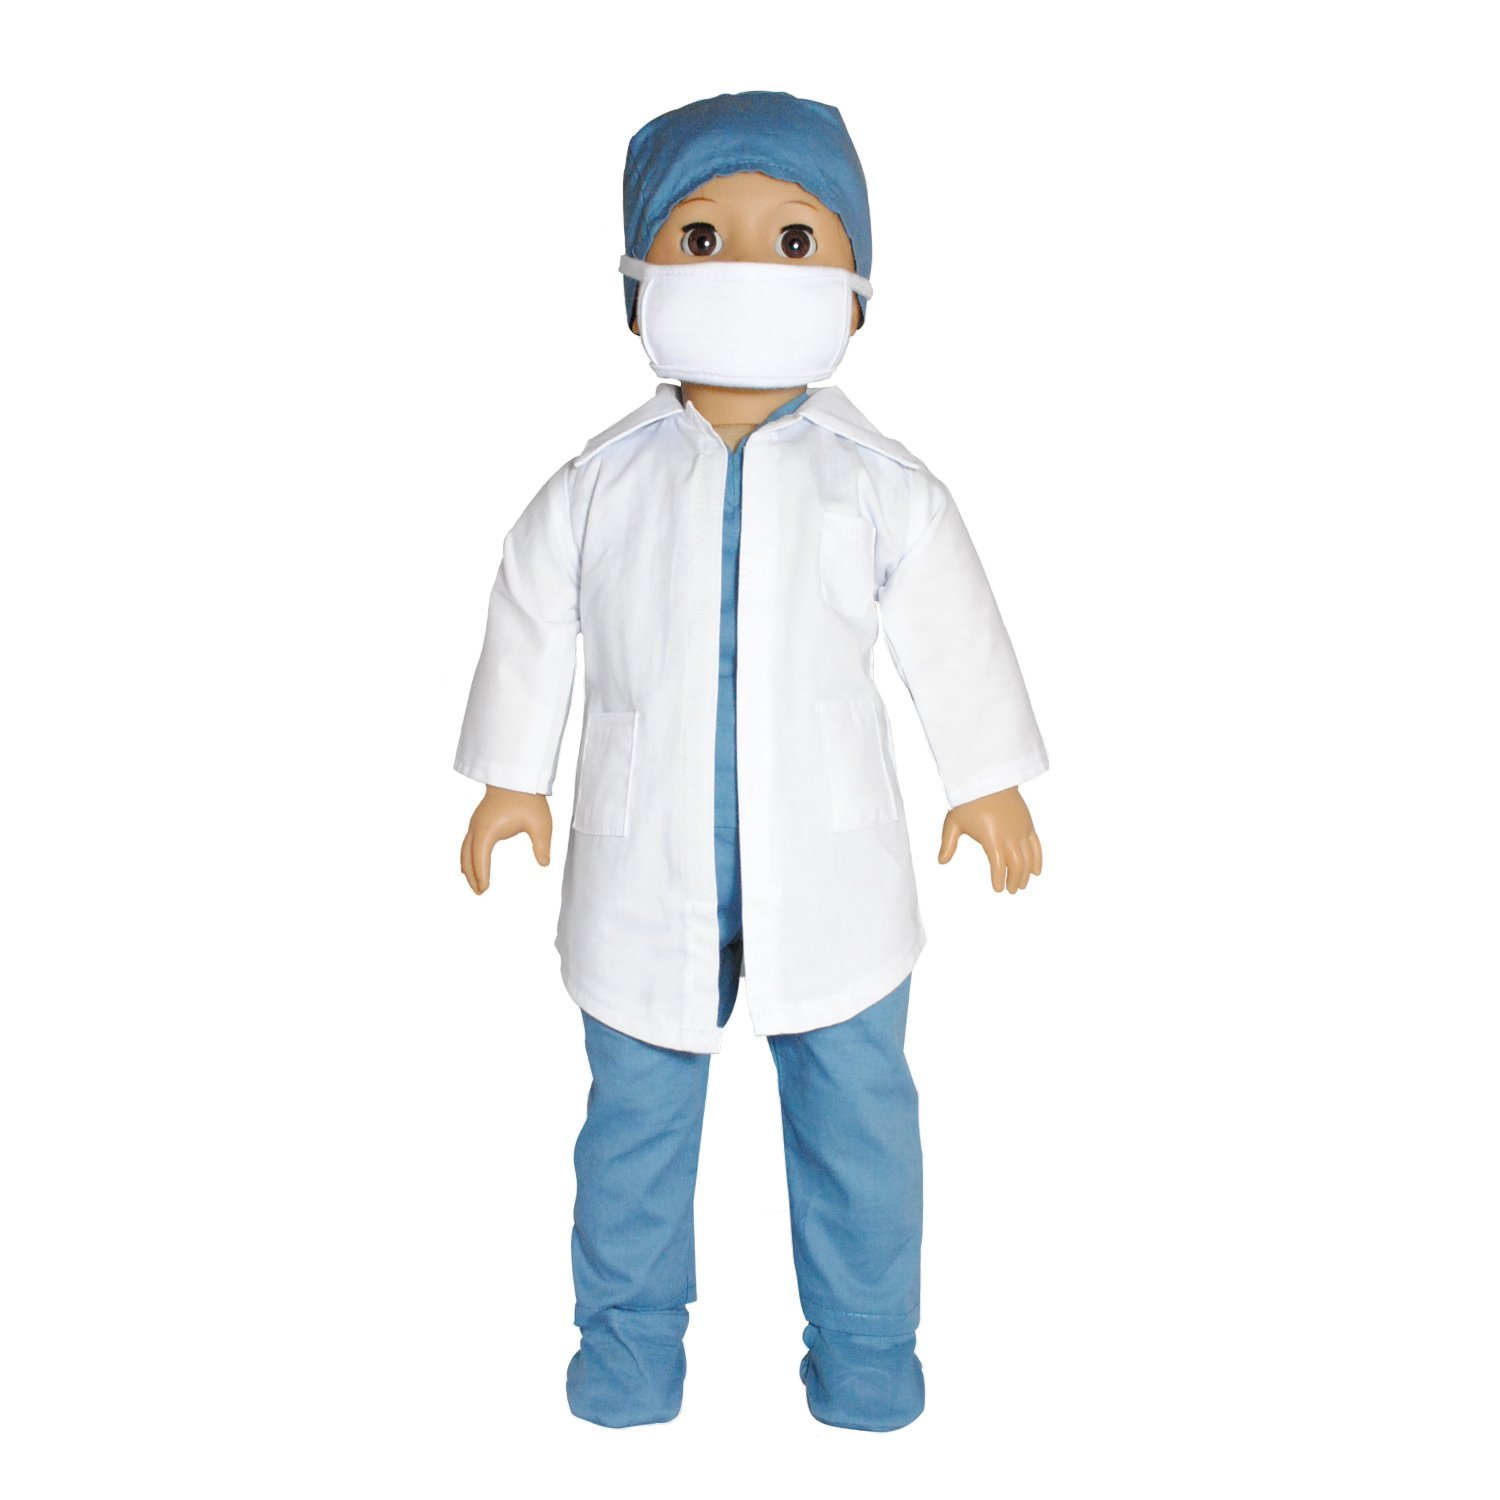 Doll Clothes Doctor   Nurse Outfit Fits American Girl & Other 18 Inch Dolls by Pink Butterfly Closet